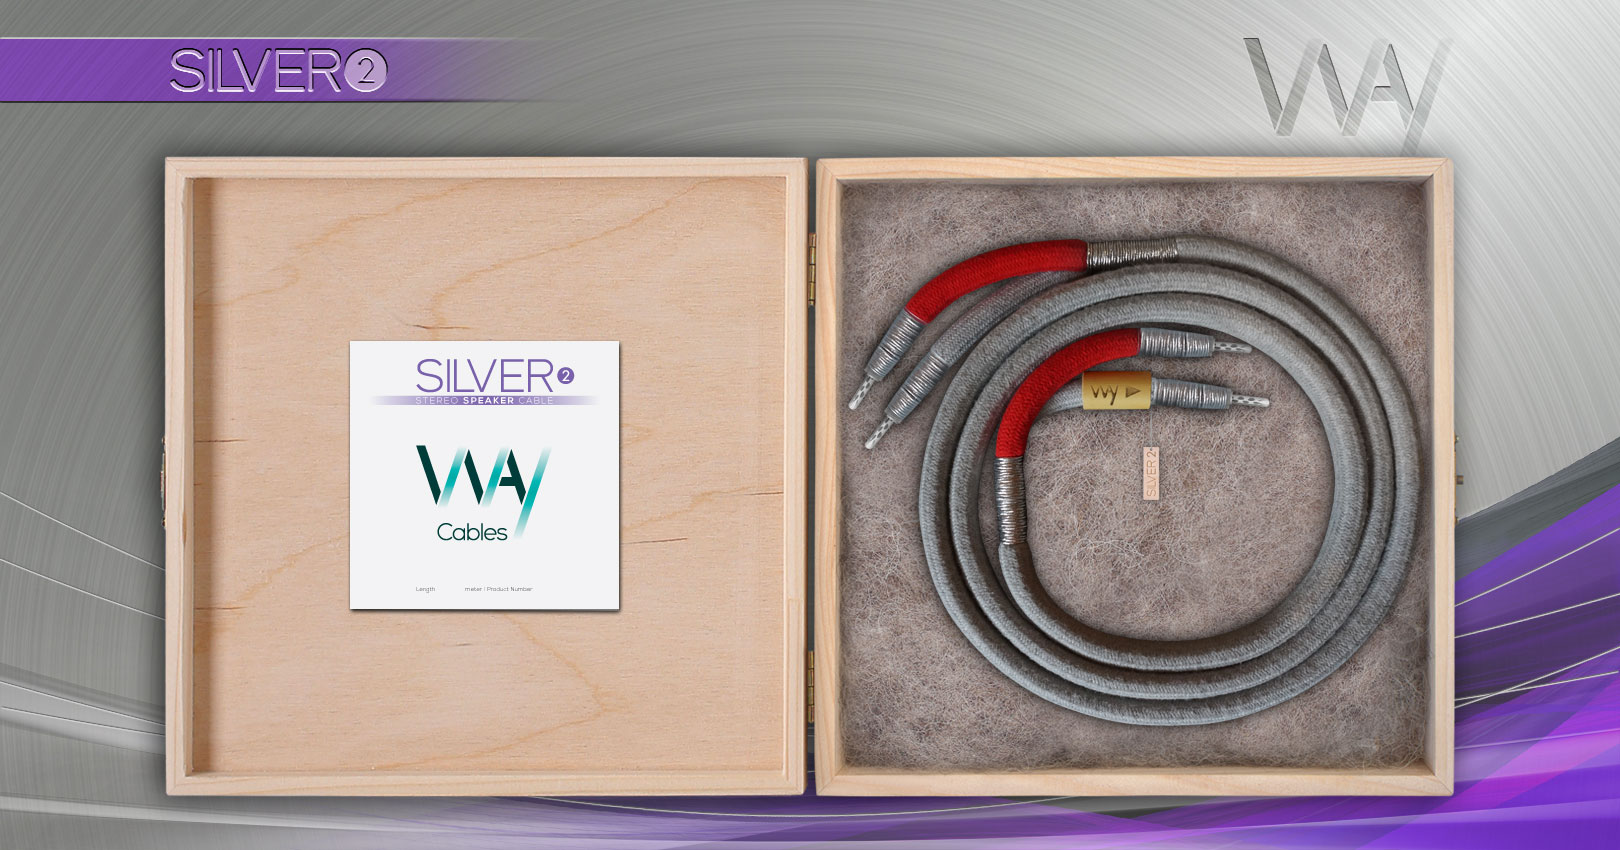 Way Cables SILVER 2 speaker cable - Gray cotton - WireWorld Uni-Term Silver banana plugs